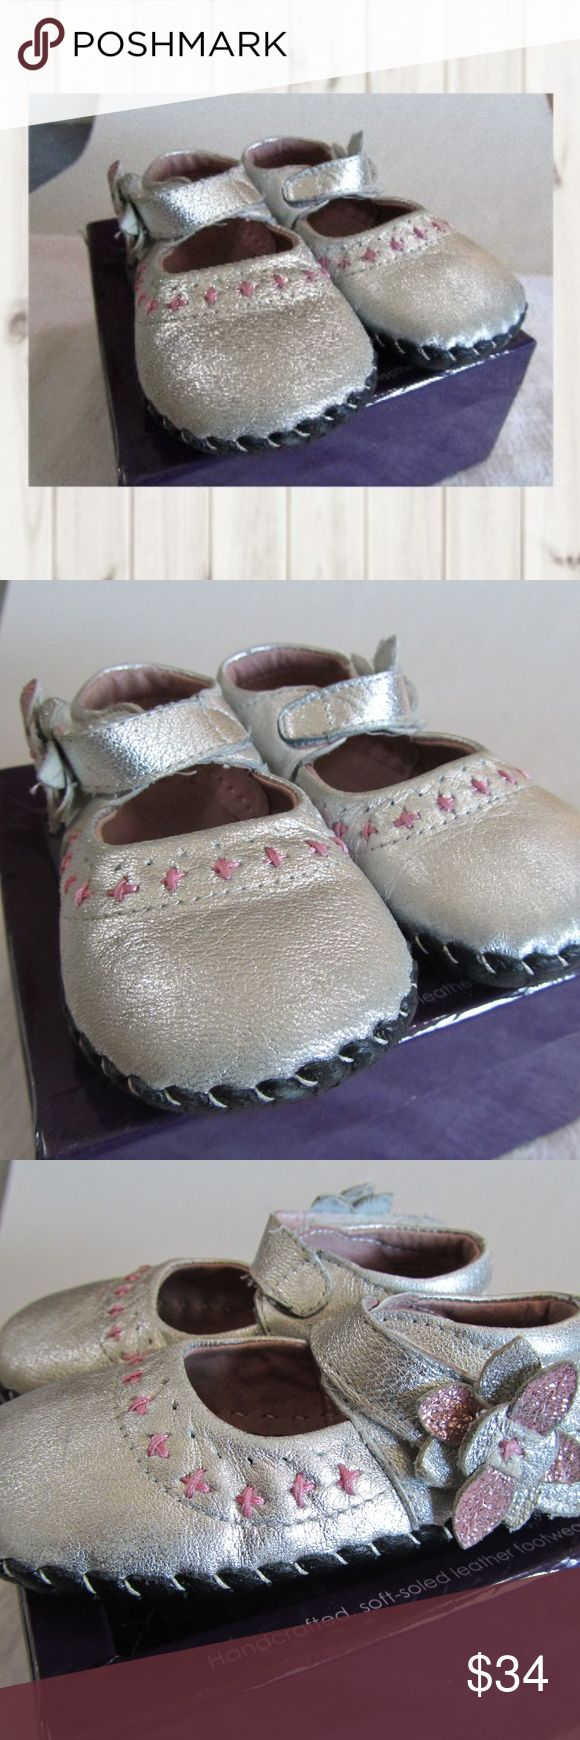 """Pediped Eva silver pink metallic leather soft shoe NWT, Pediped """"Eva"""" silver & pink metallic, leather soft sole shoes, toddler size 18-24 months. Size Large.   Smoke and pet free home  (S26-PM,EB) pediped Shoes Baby & Walker"""